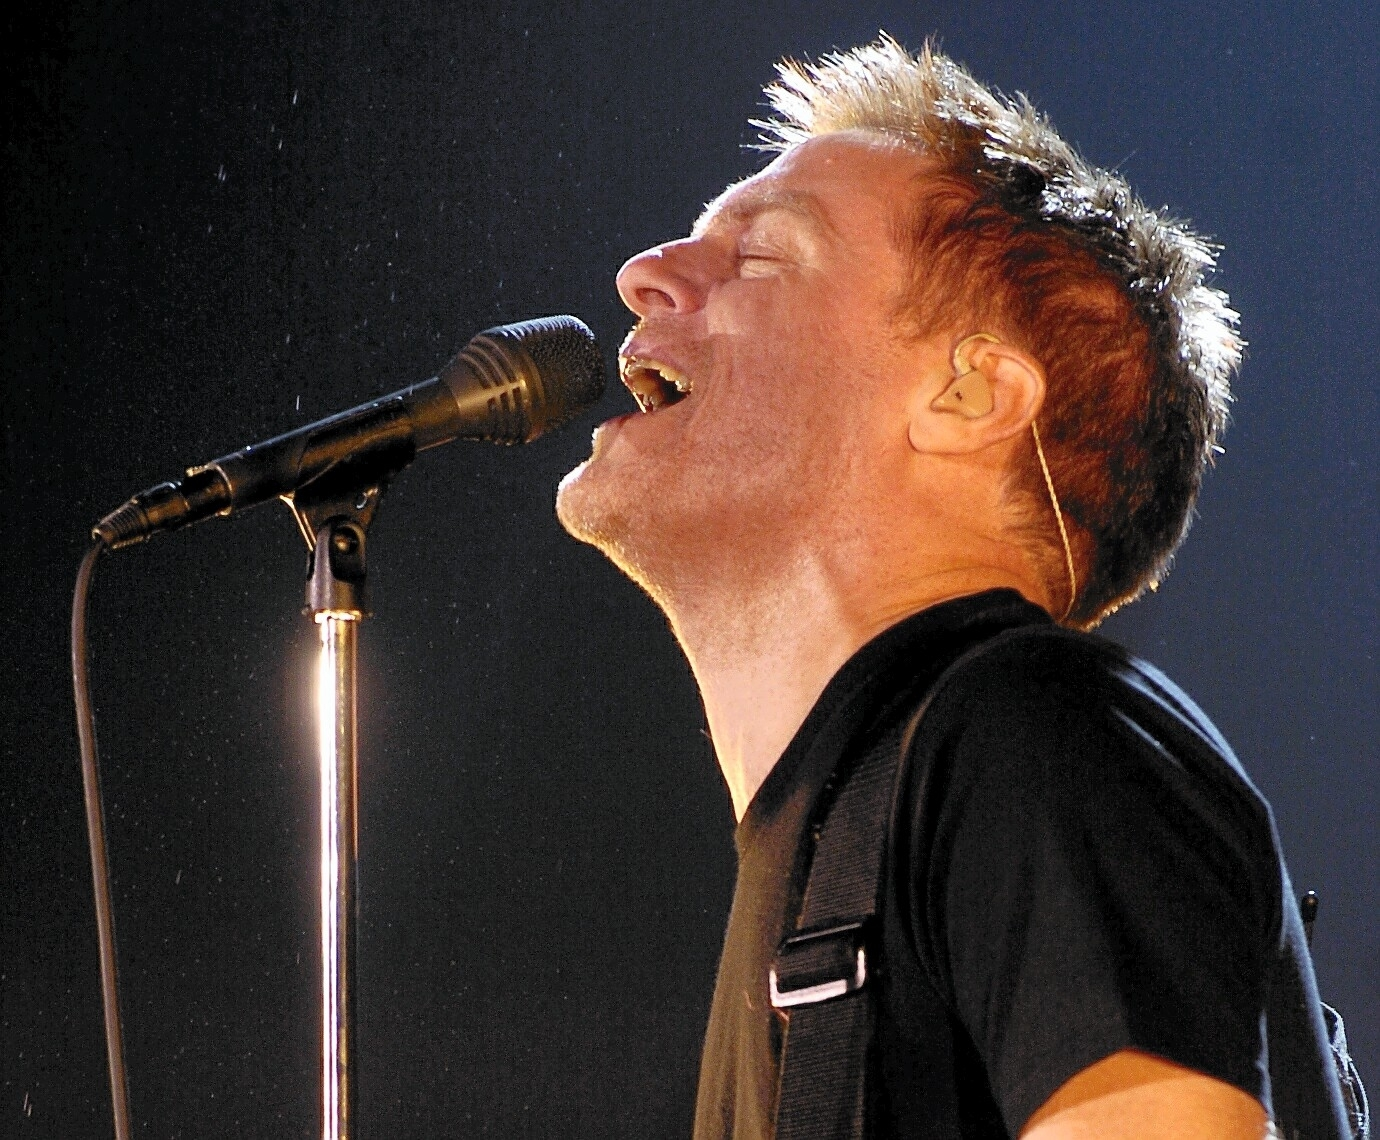 Bryan Adams performs live at AECC back in Autumn of 2004